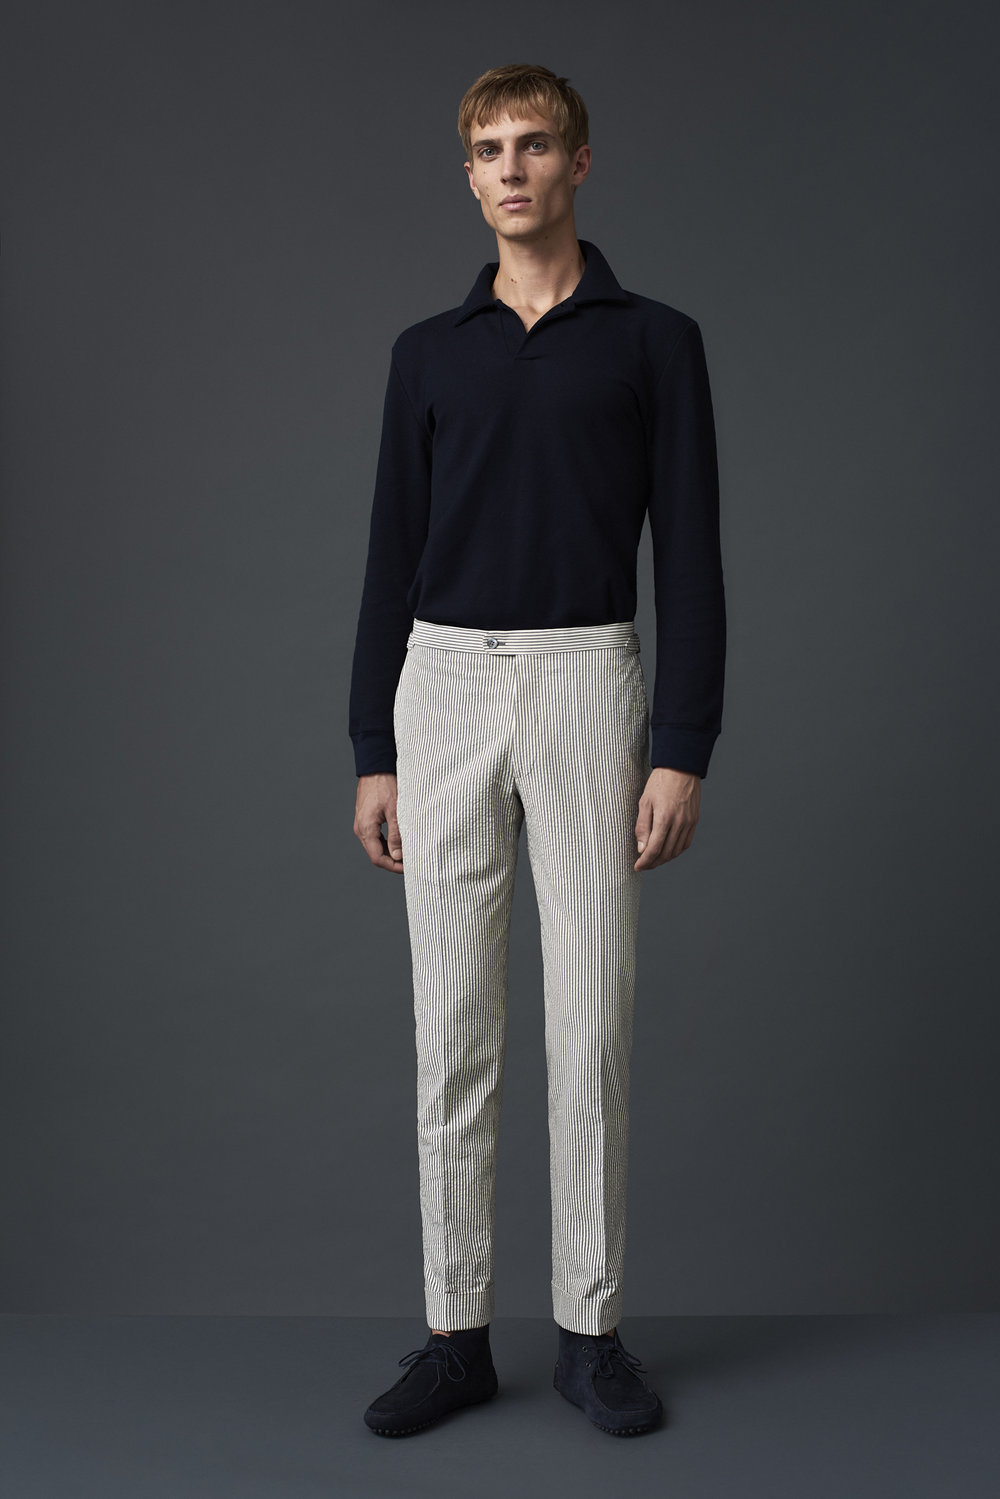 P Johnson worsted cotton polo shirt, worn with seersucker cotton trousers woven in Italy.